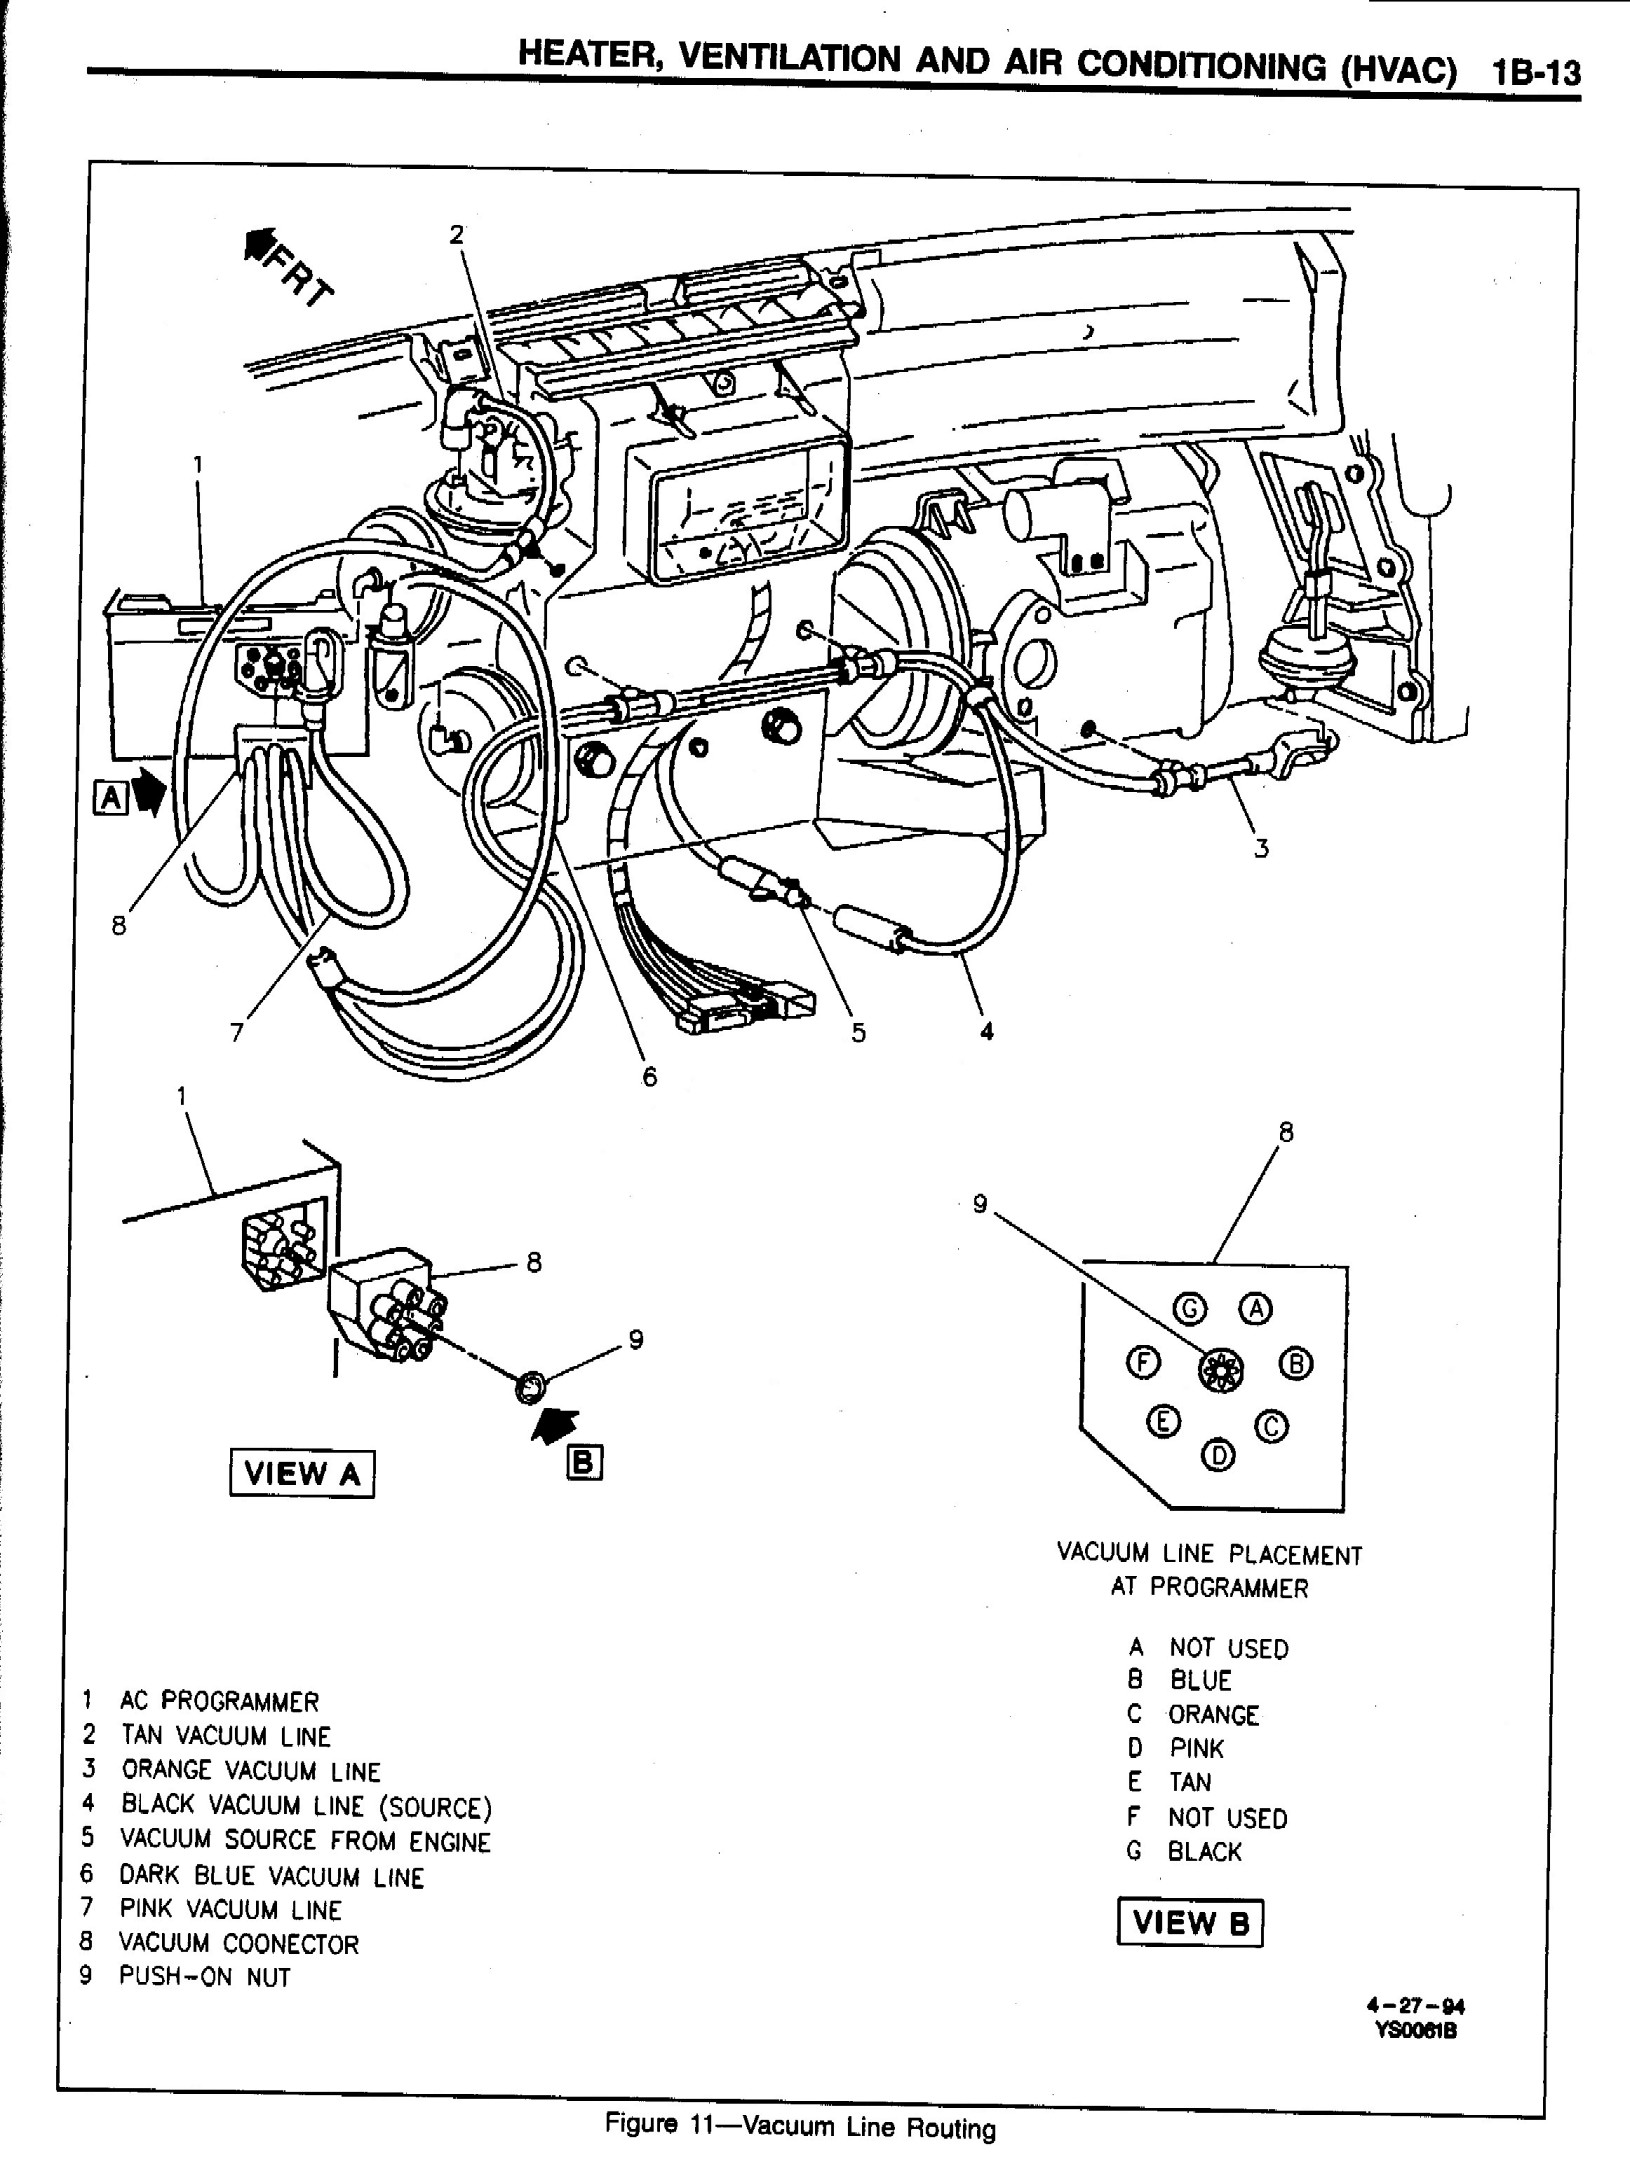 Diagram Mitsubishi Pajero Montero Workshop Service Repair Manual Wiring Diagram Manual 1991 1992 1993 1994 1995 1996 1997 1998 1999 3000 Pages Original Fsm Full Version Hd Quality Original Fsm Ggwiring Tempocreativo It